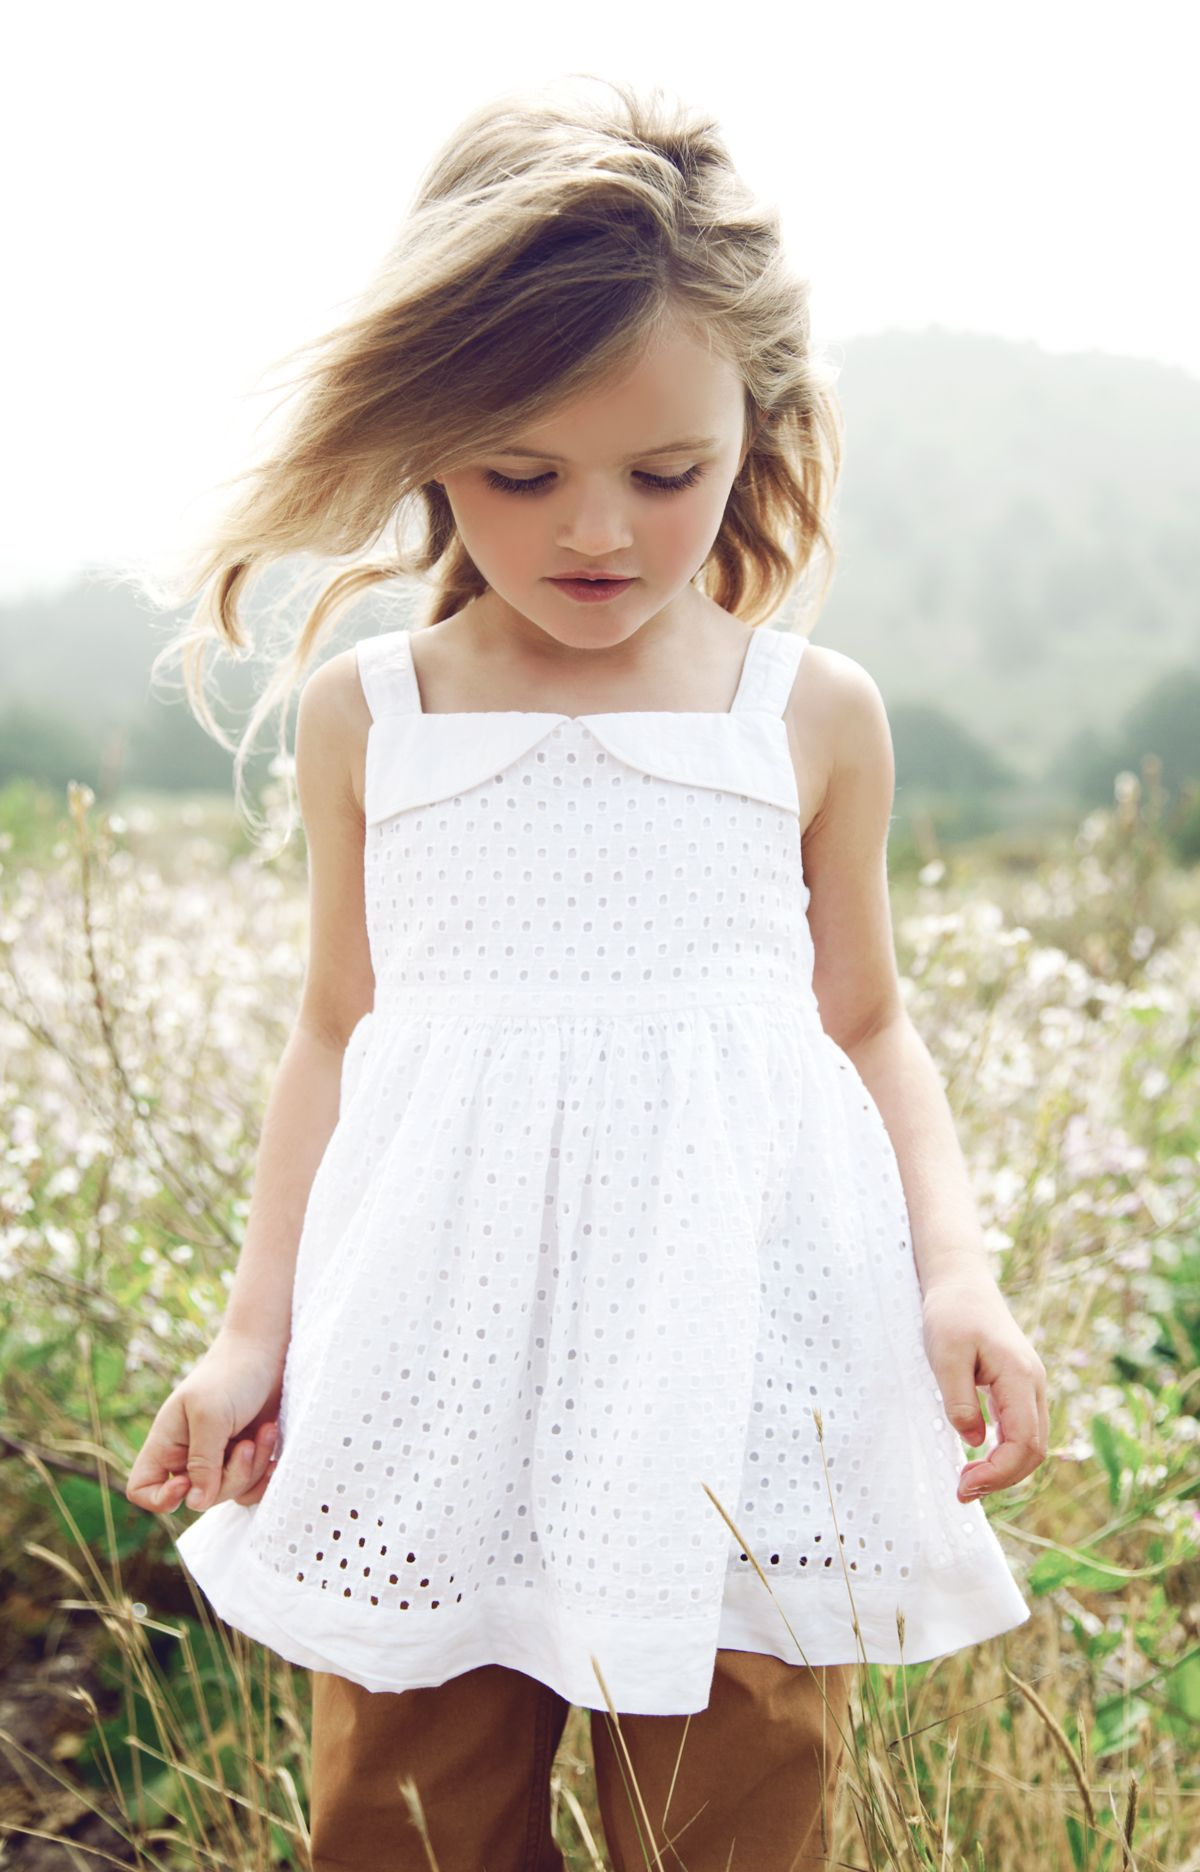 Kids Fashion. I ABSOLUTELY LOVE THIS DRESS. I want it in my size ...